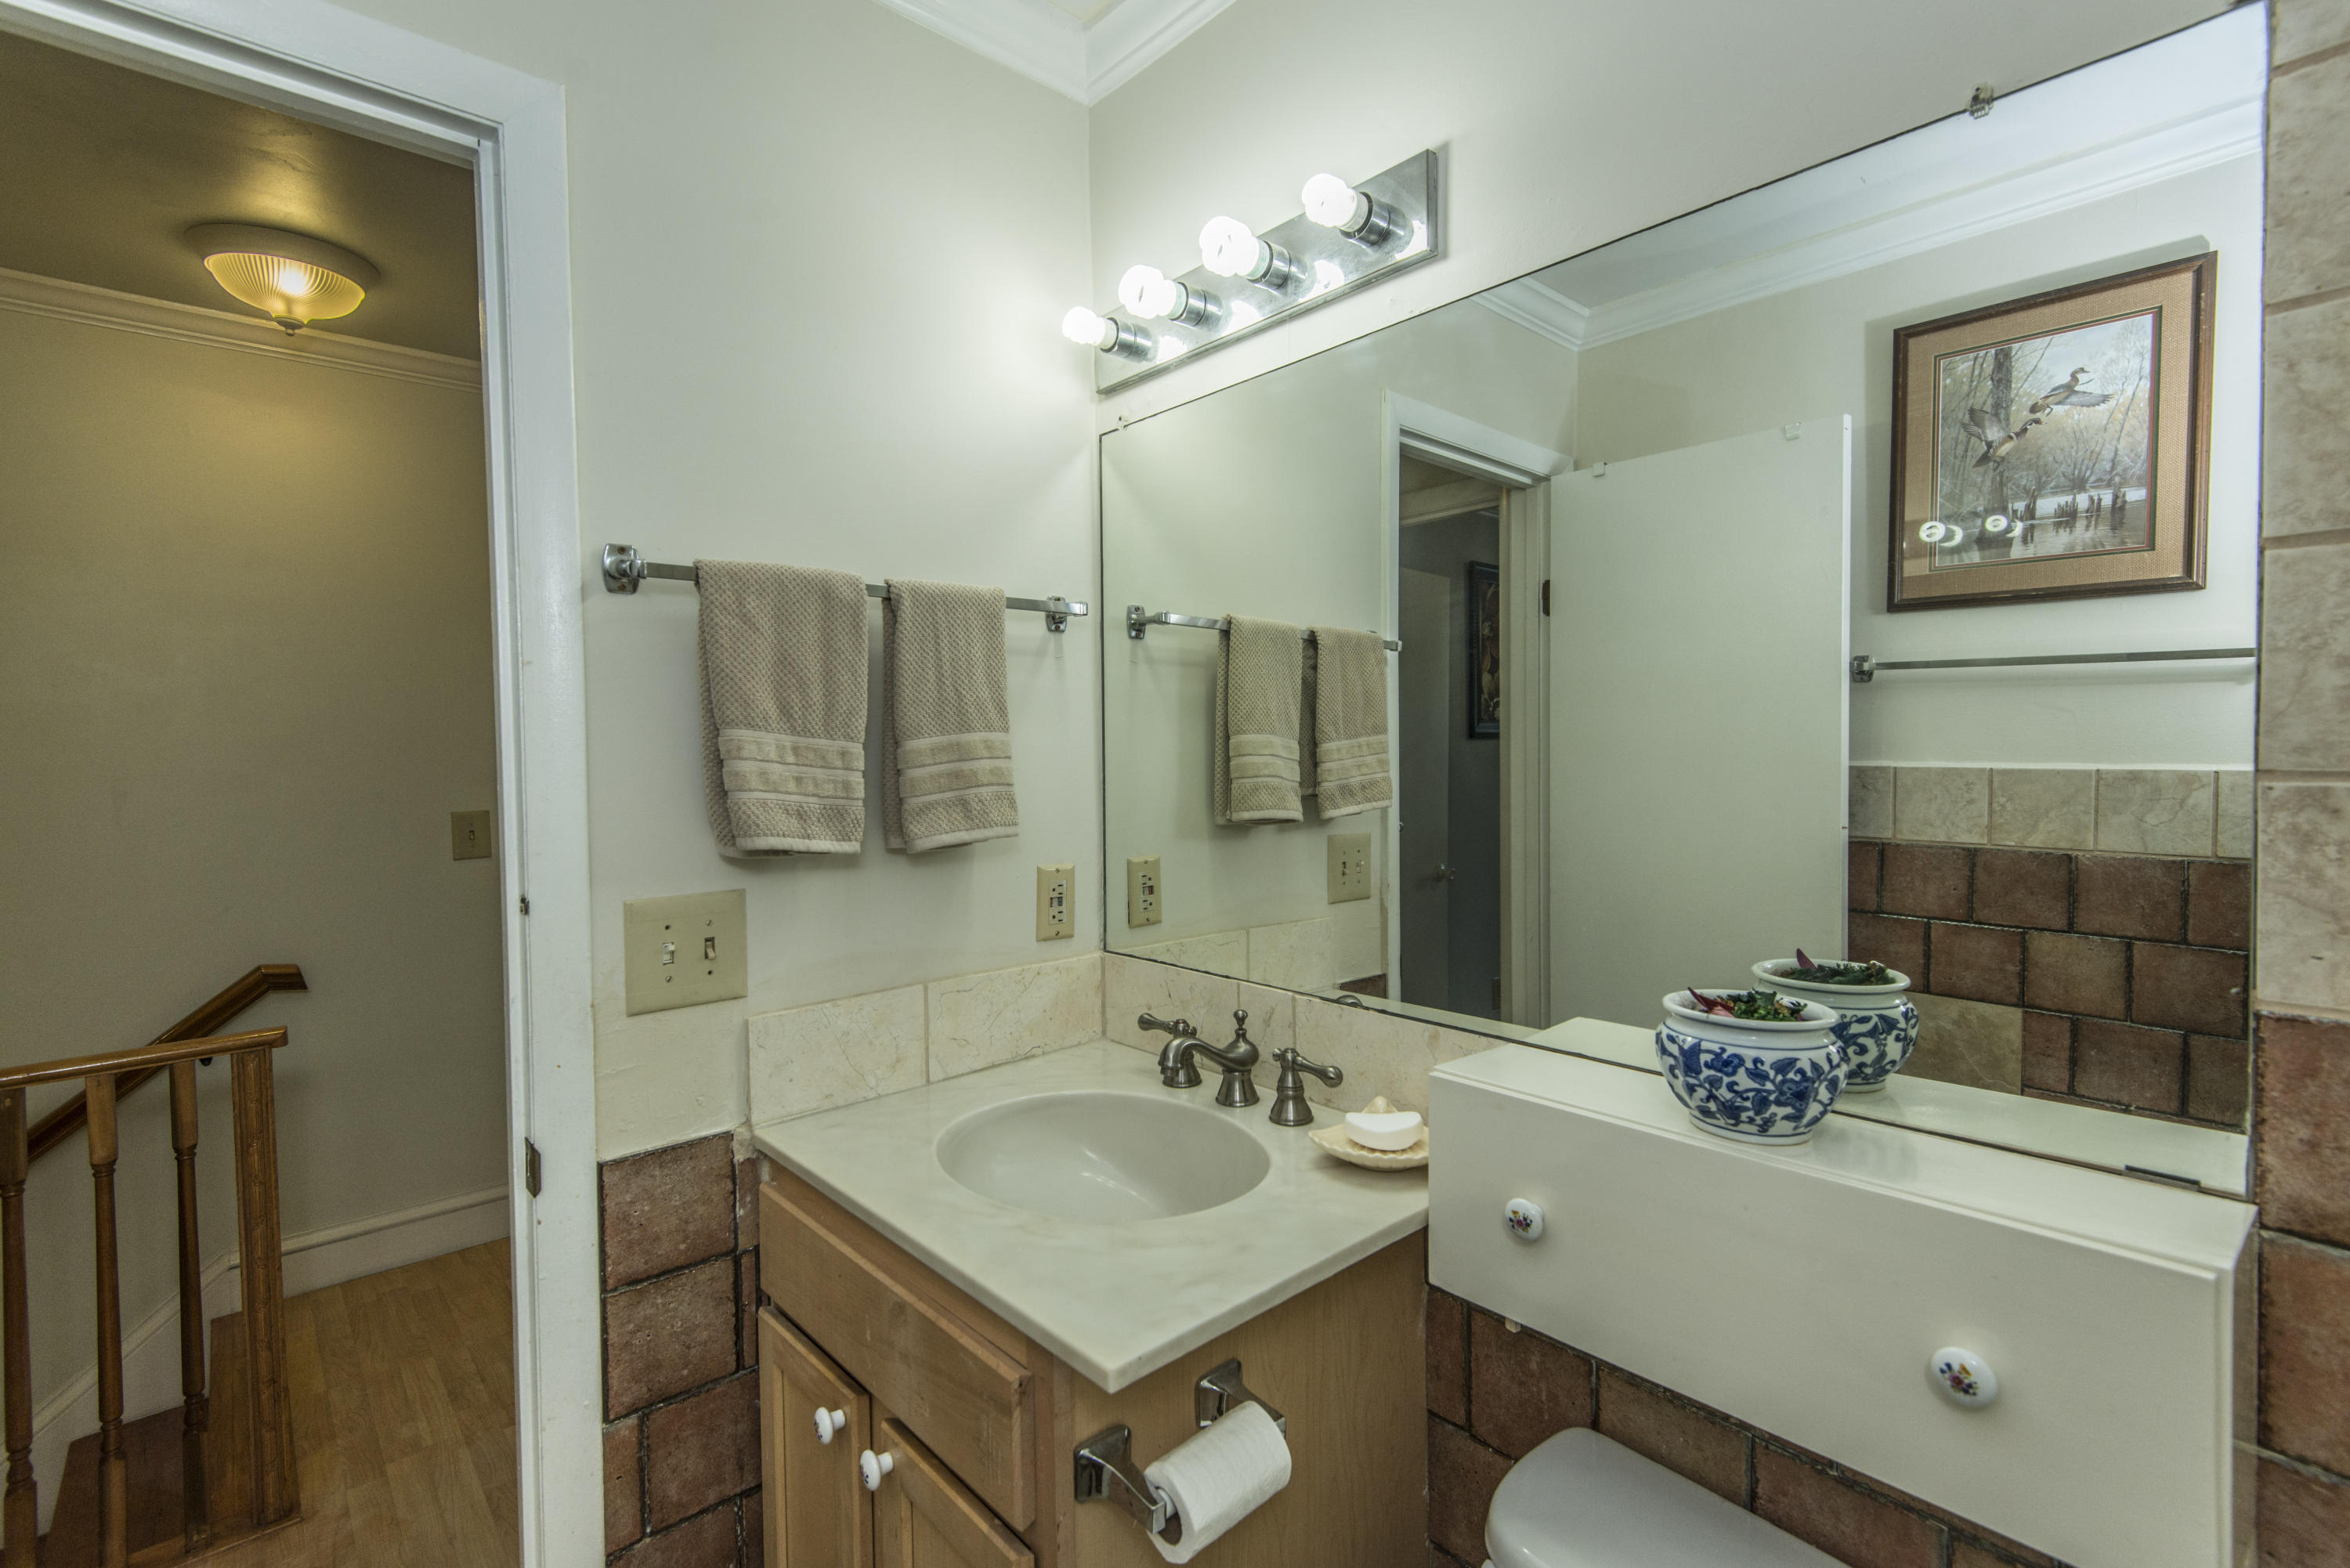 Rivers Point Row Homes For Sale - 21 Rivers Point Row, Charleston, SC - 18